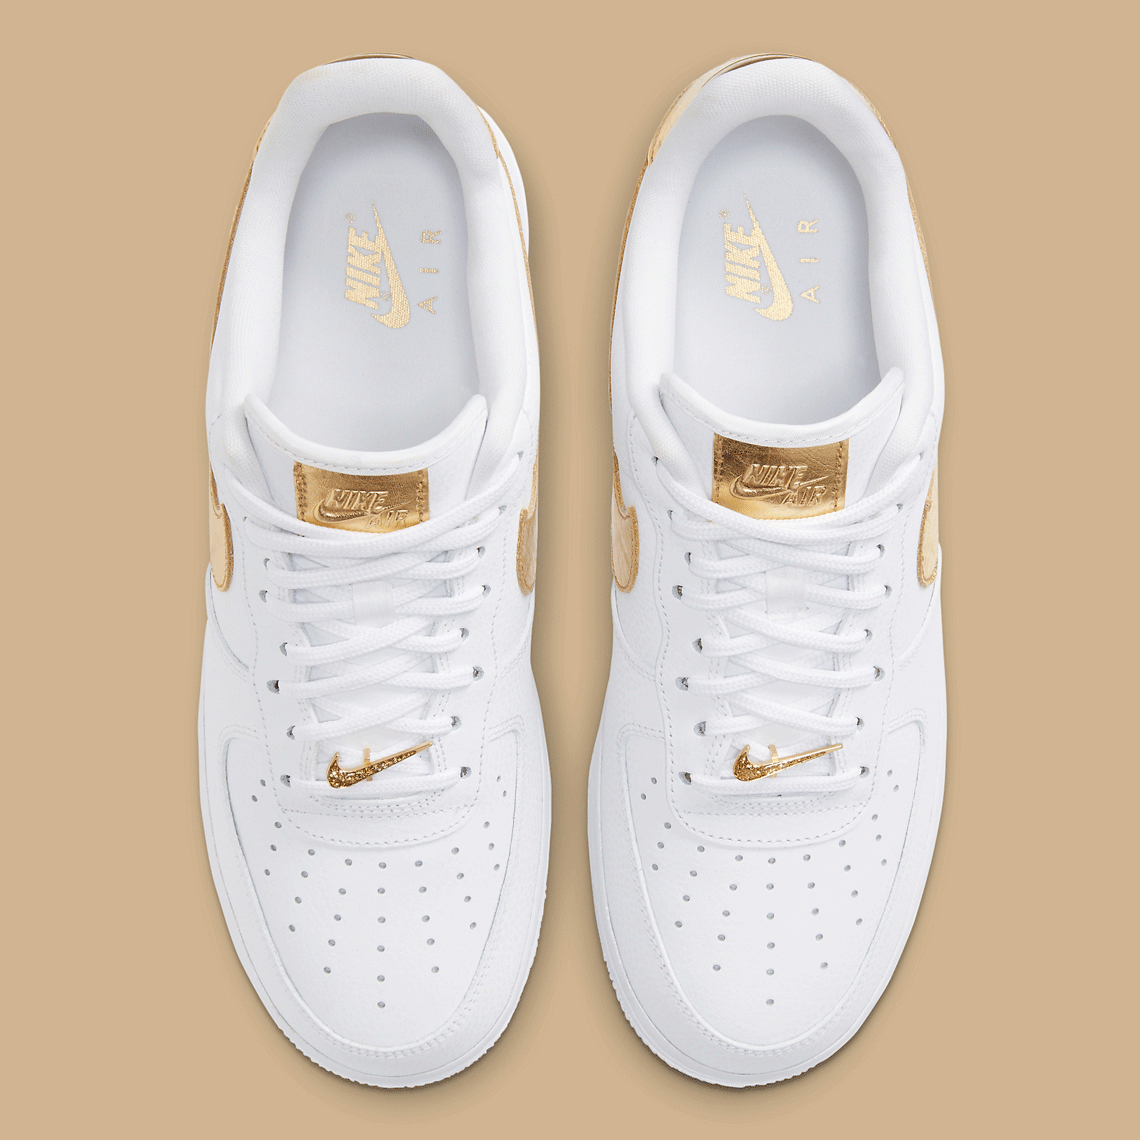 Nike-Air-Force-1-Low-Metallic-Gold-Hover-View